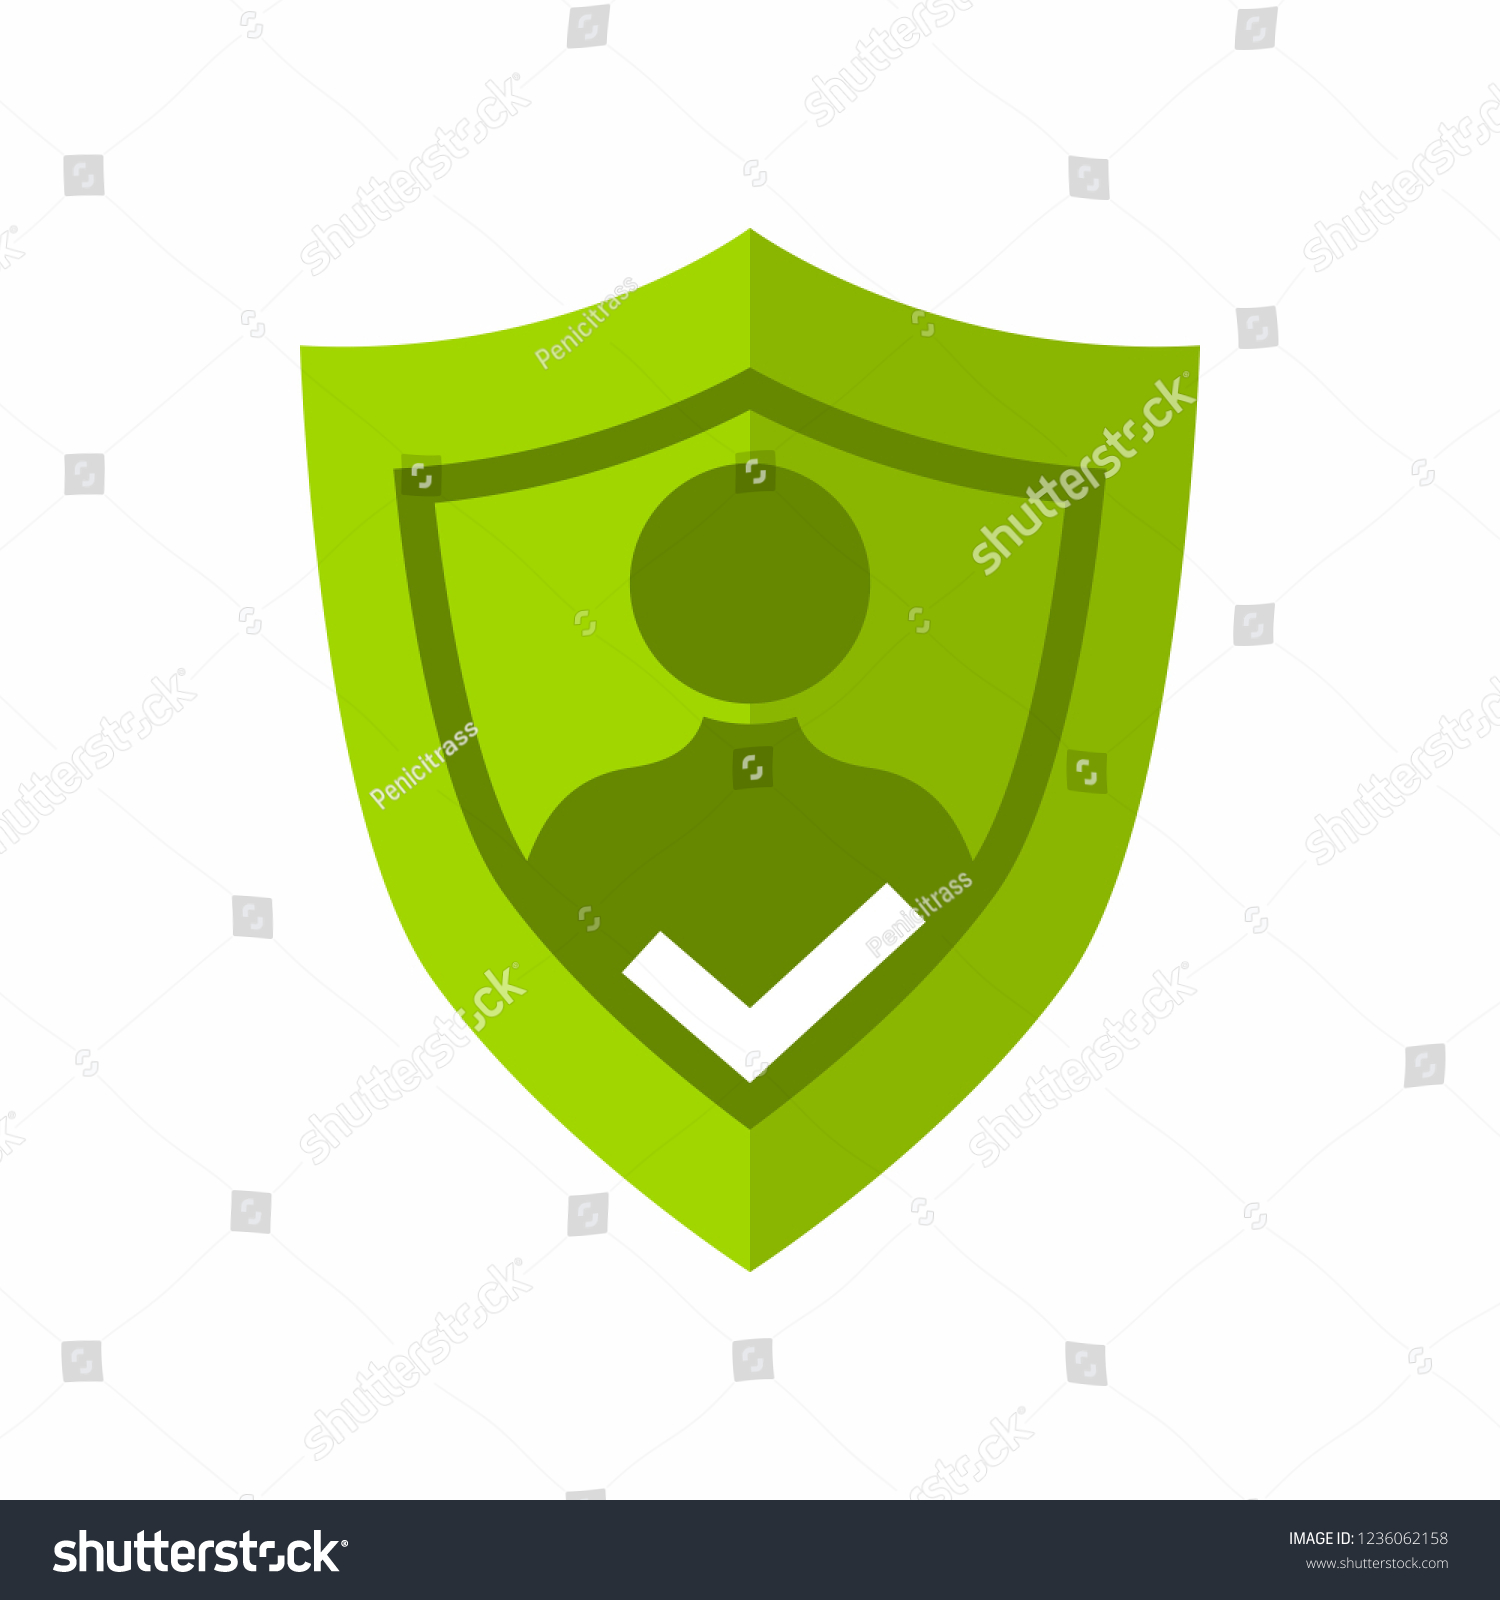 User Privacy Shield Guard Self Protection Stock Vector Royalty Free 1236062158